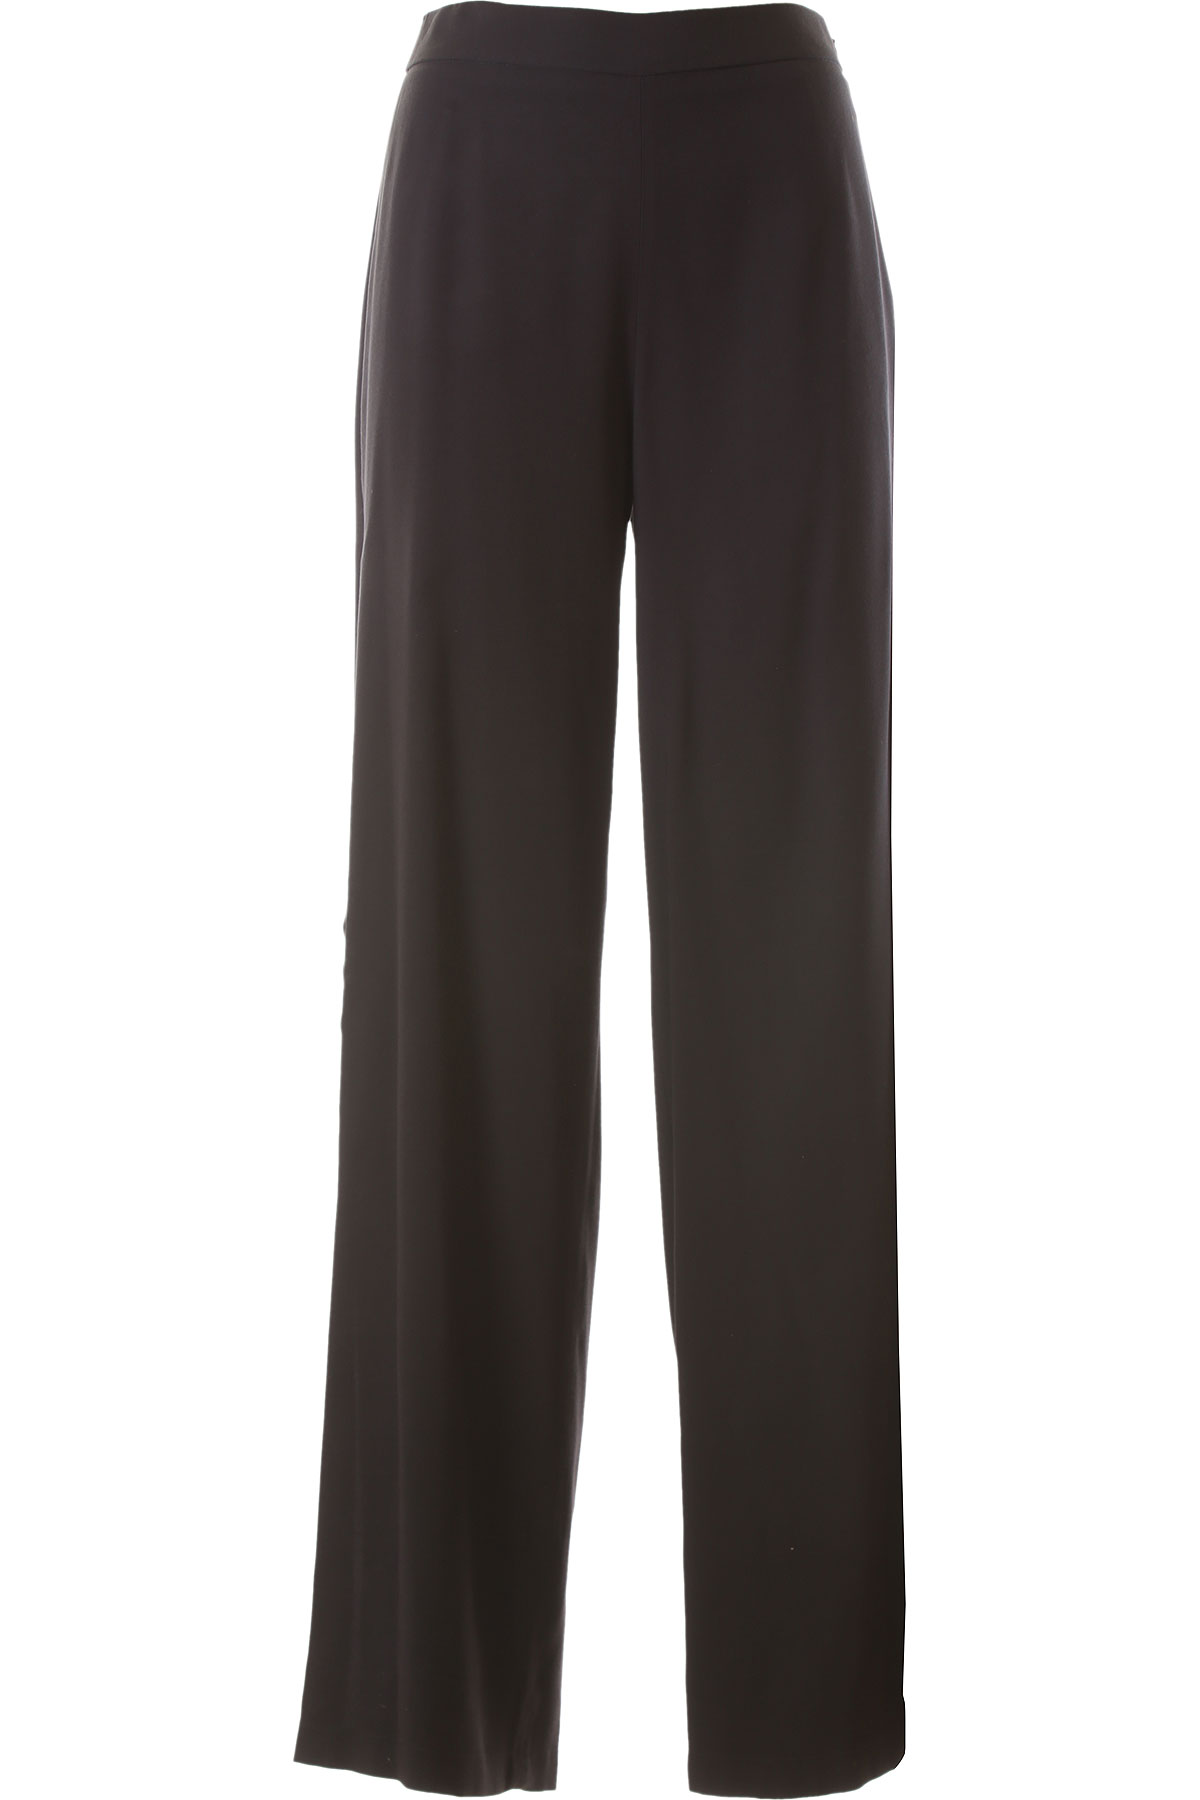 Federica Tosi Pants for Women On Sale, Black, viscosa, 2019, 4 8